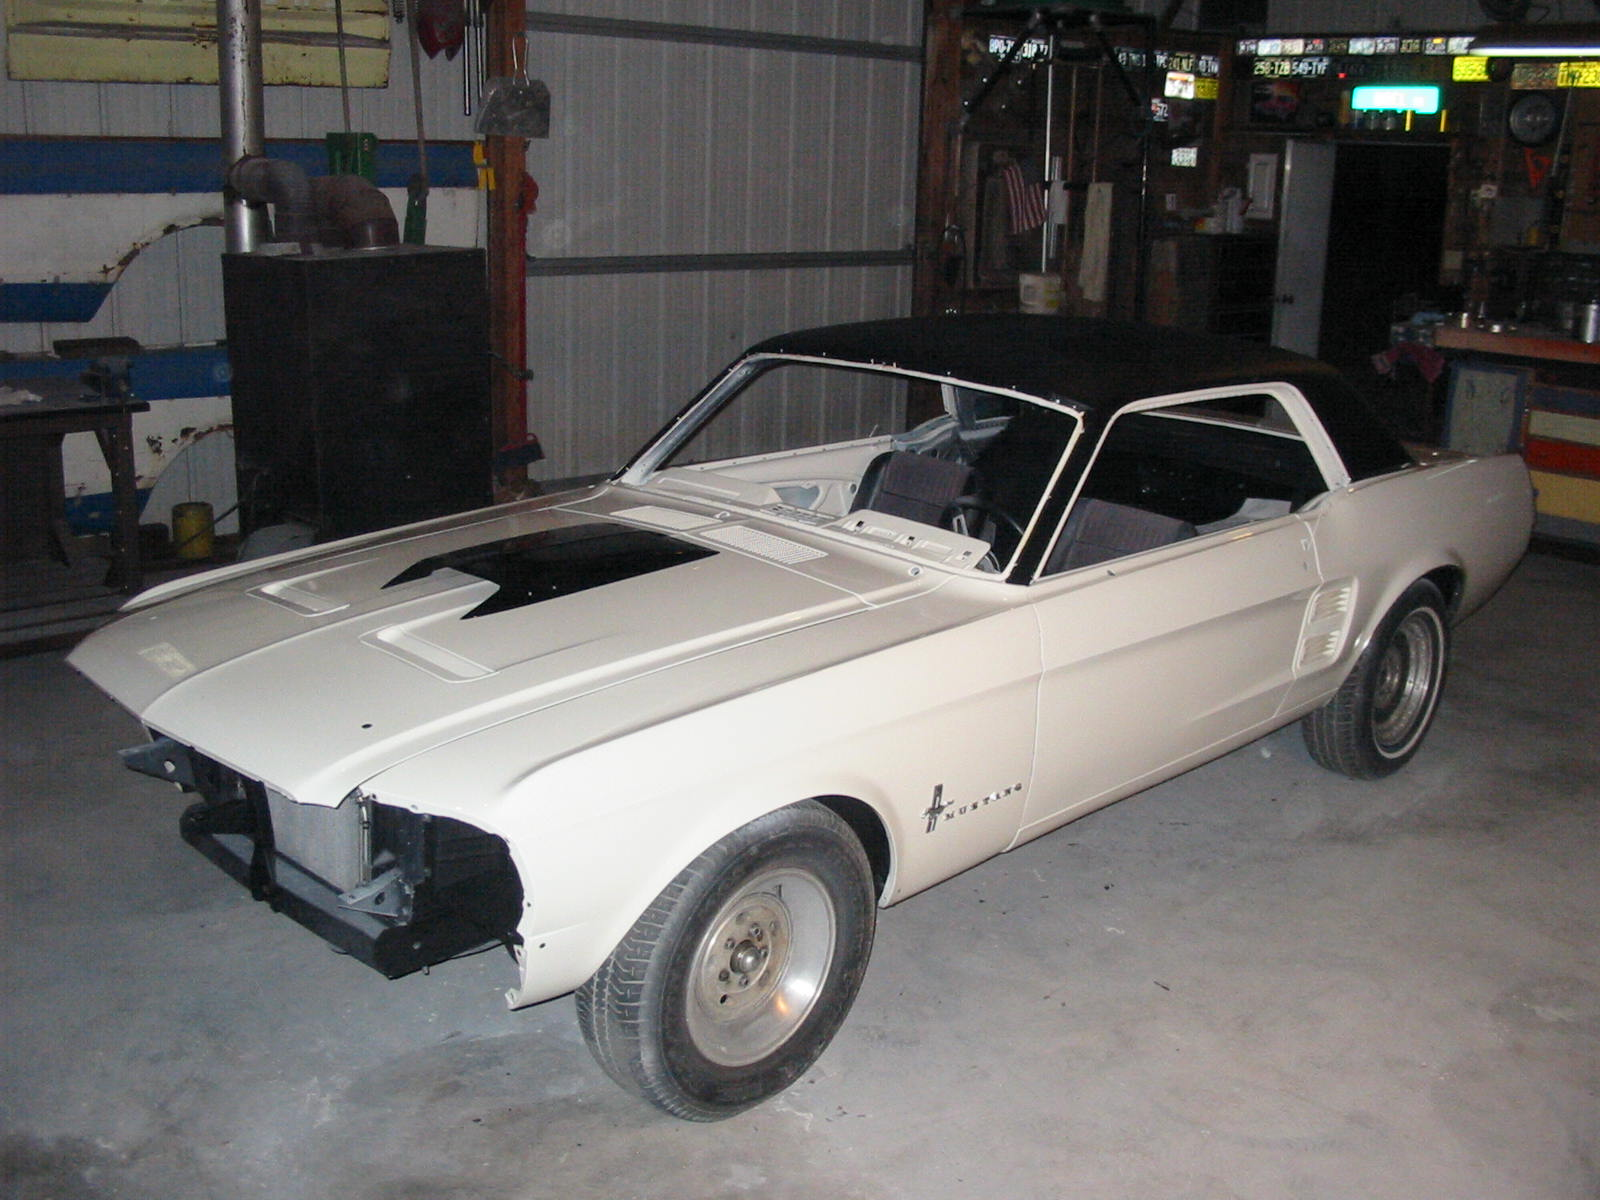 Click image for larger version  Name:Mustang 67 101101 20.JPG Views:159 Size:224.7 KB ID:49632